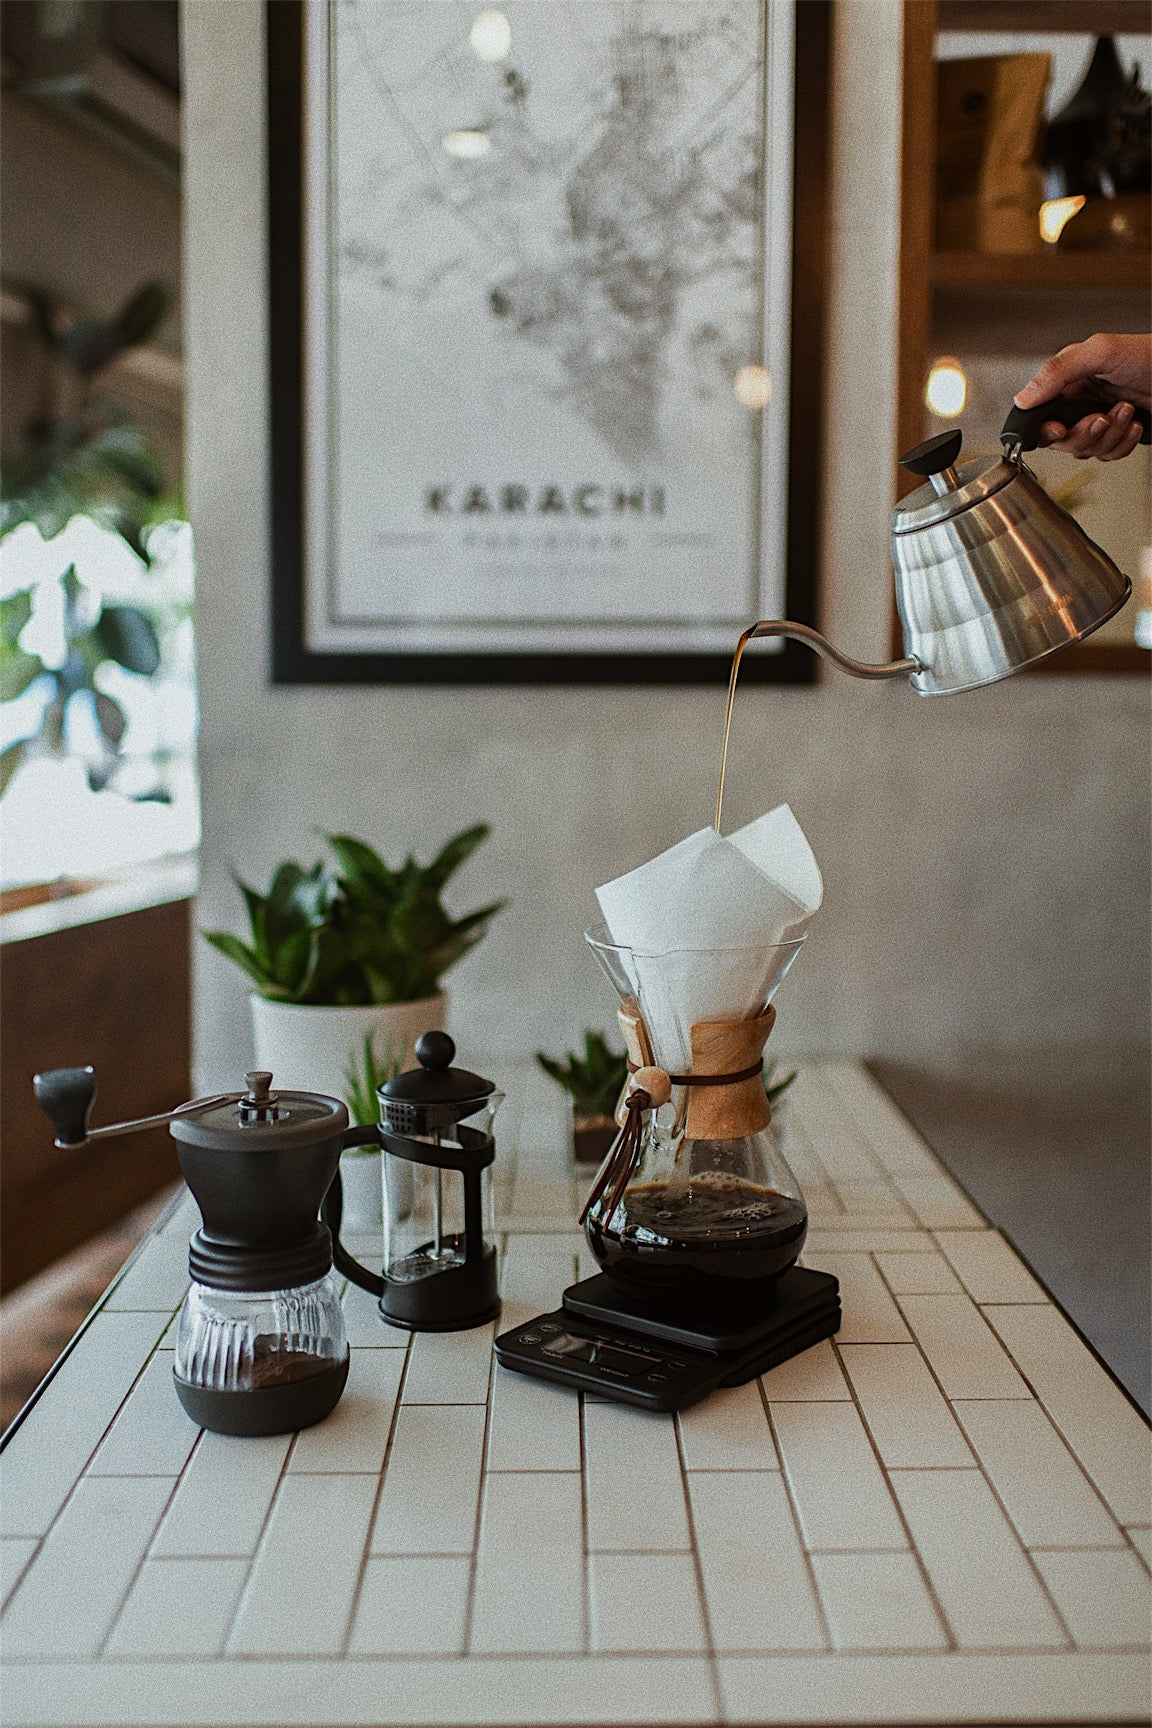 Rethink Pour-Over Gooseneck Kettle | Rethink Café | Pakistan